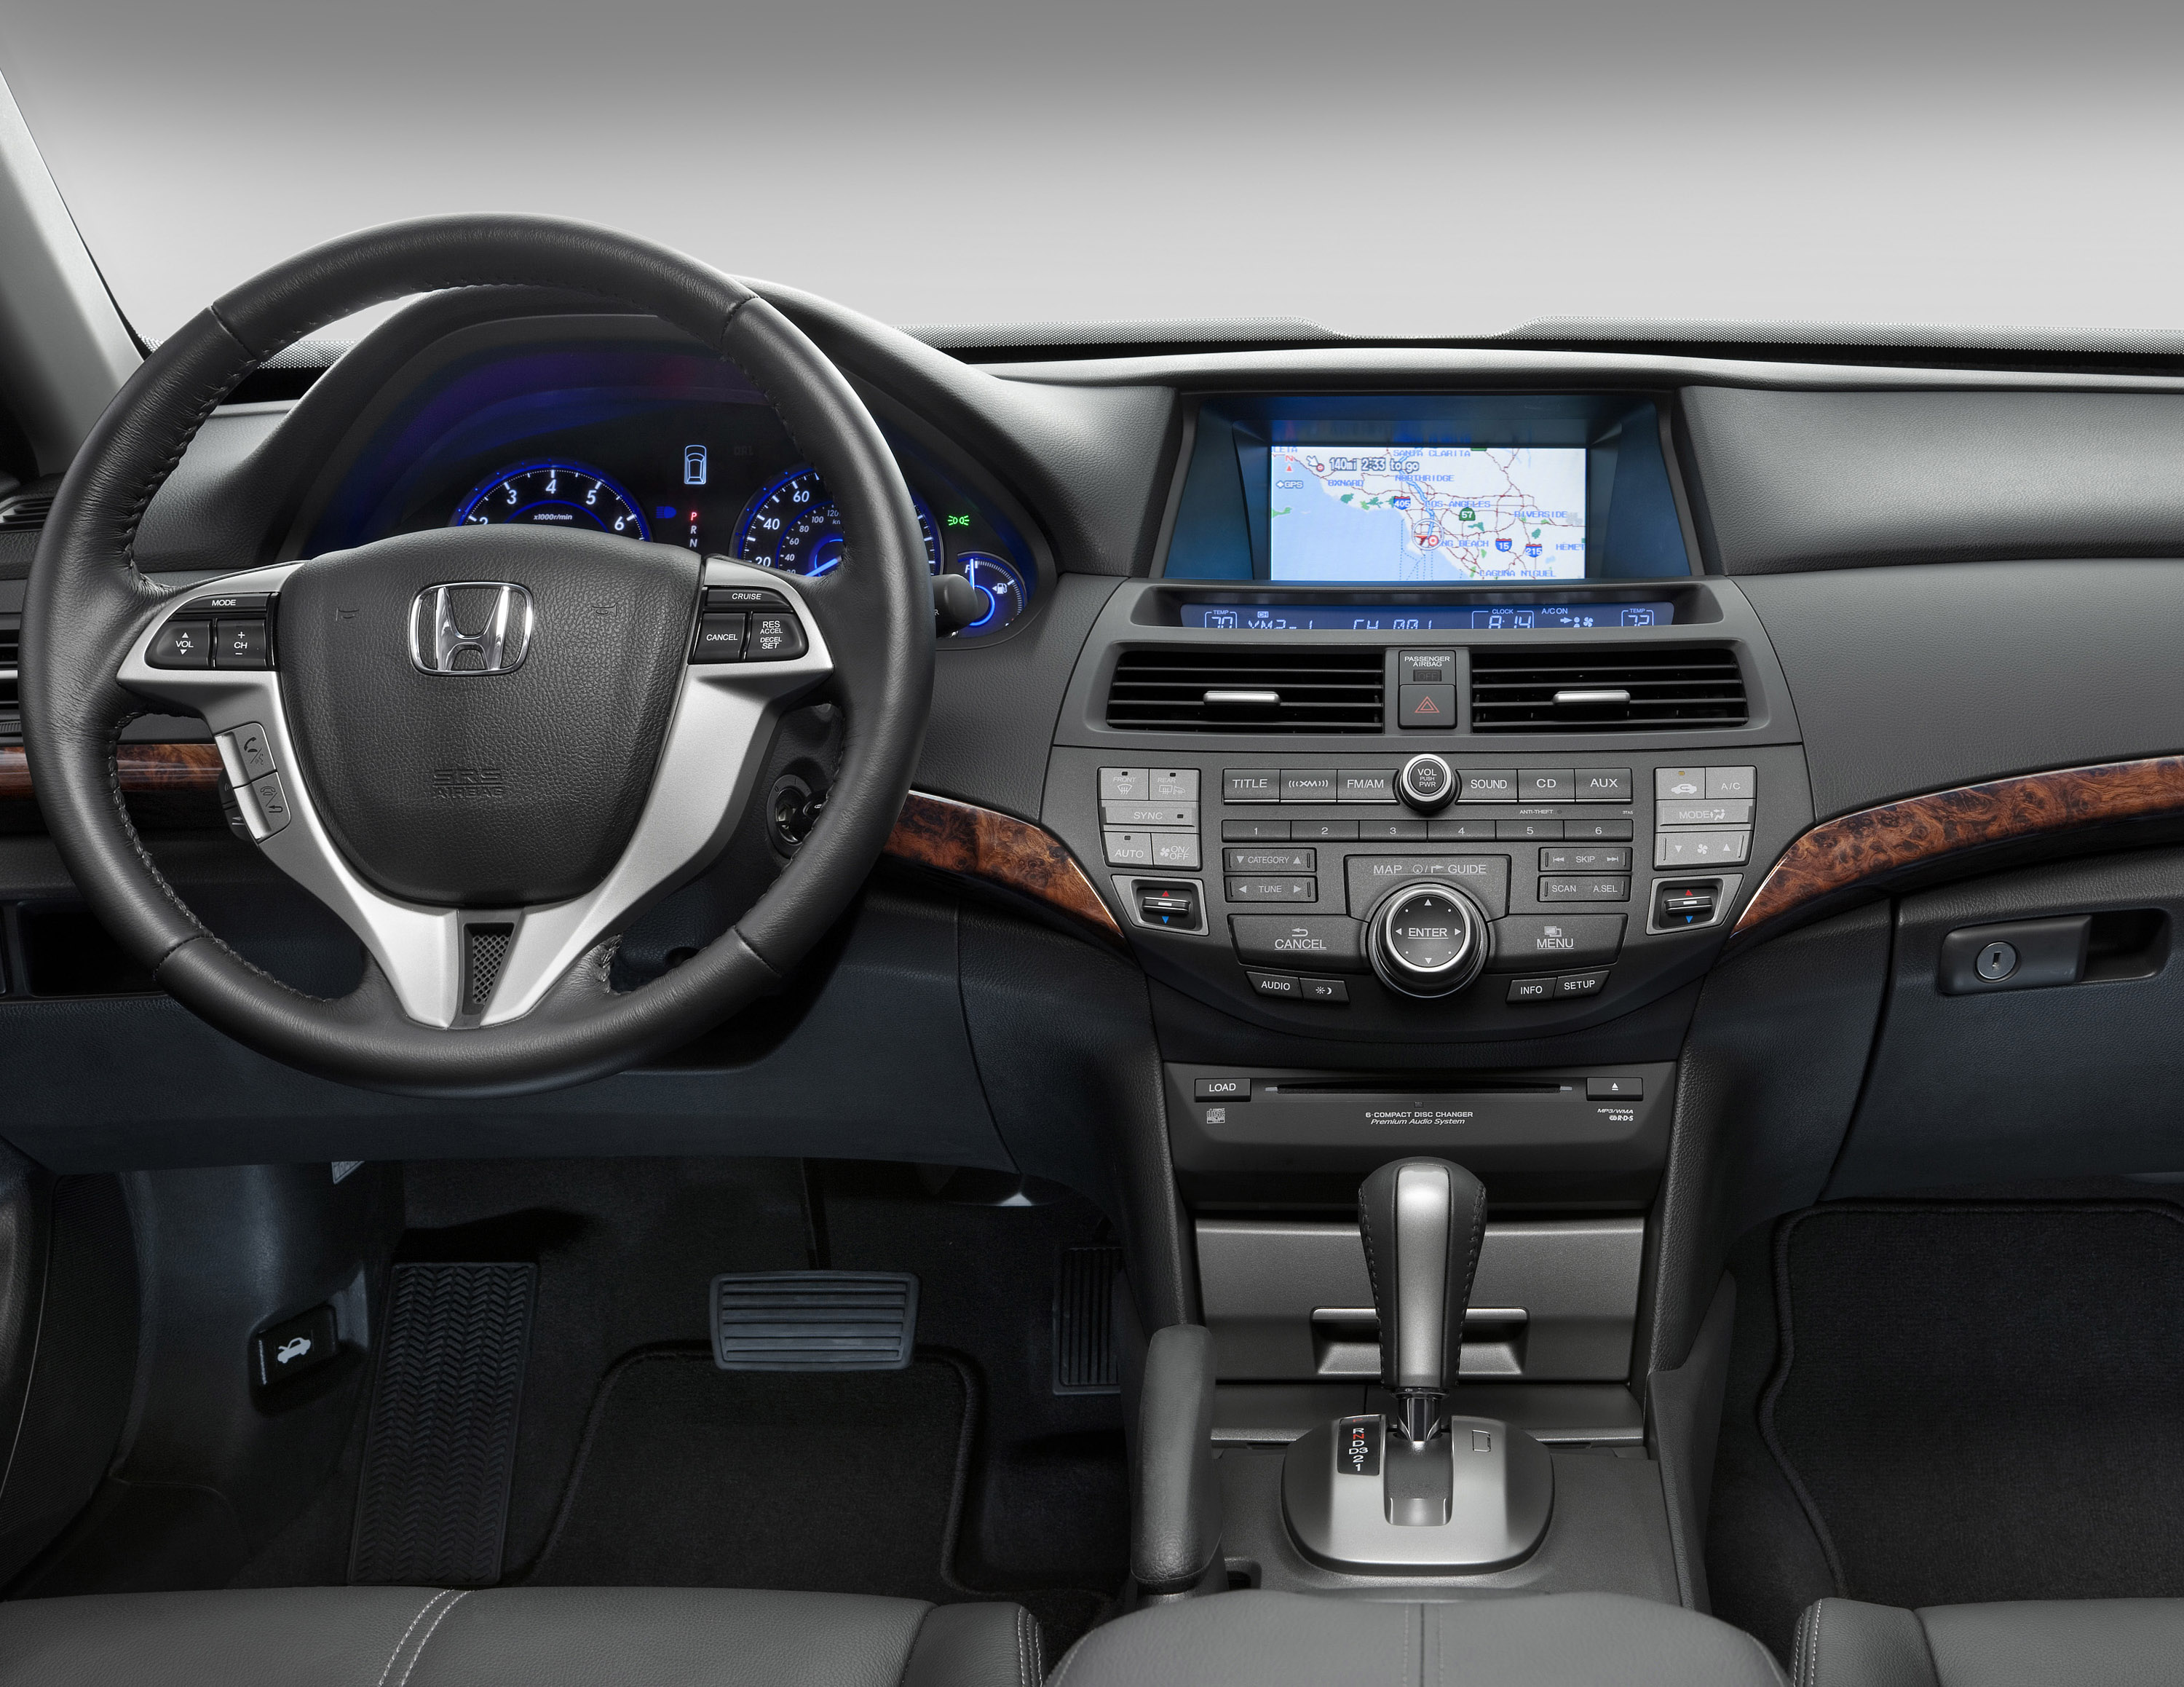 2010 Honda Accord Crosstour - Picture 26853